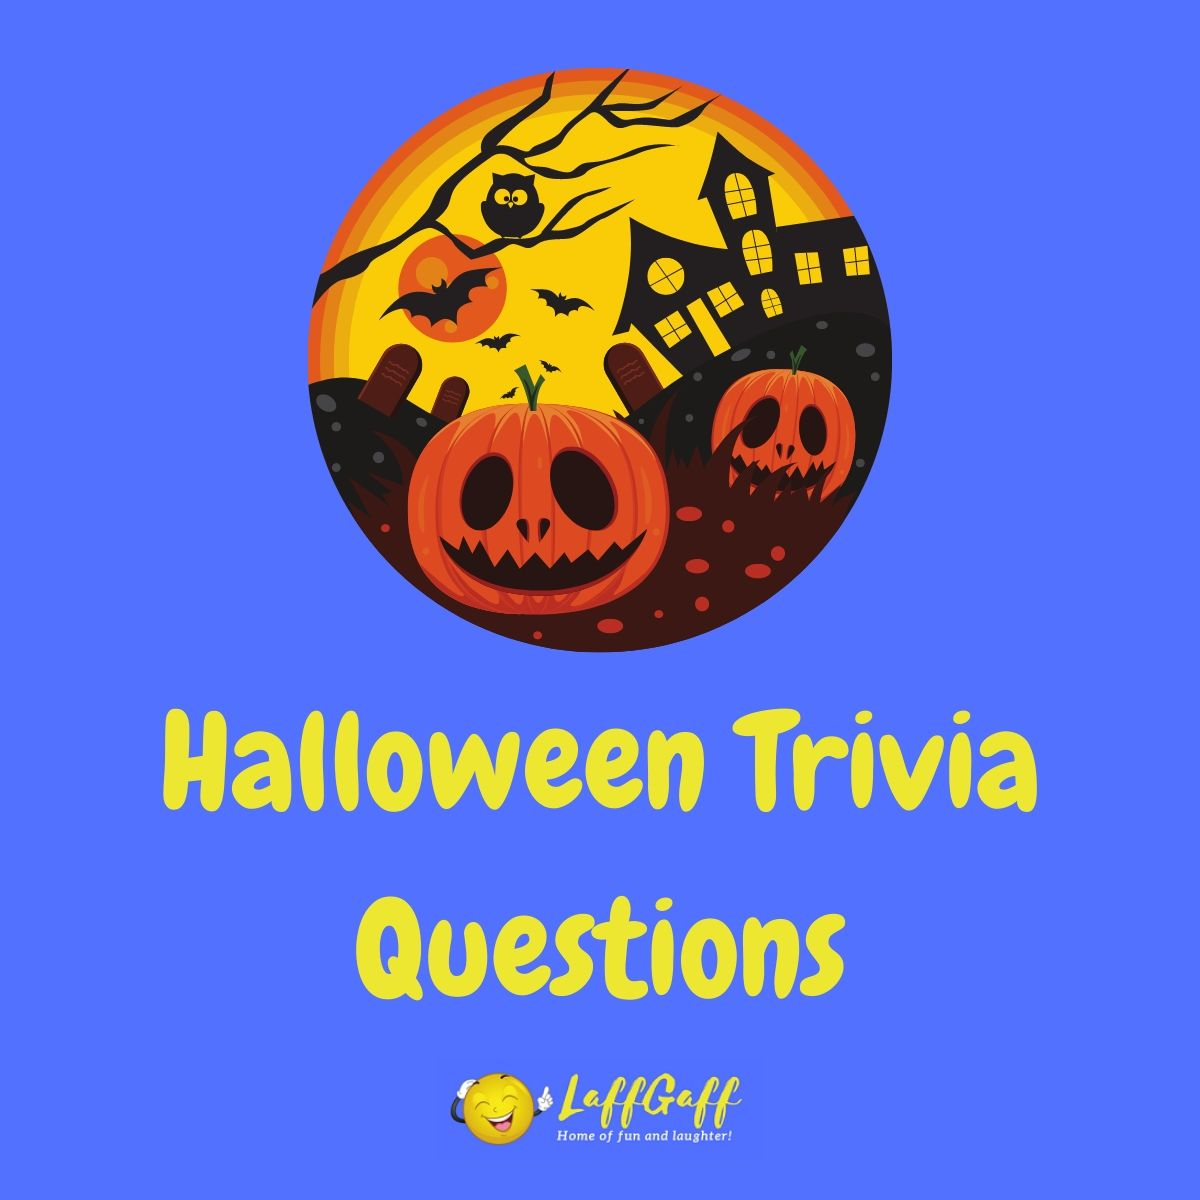 Featured image for a page of Halloween trivia questions and answers.